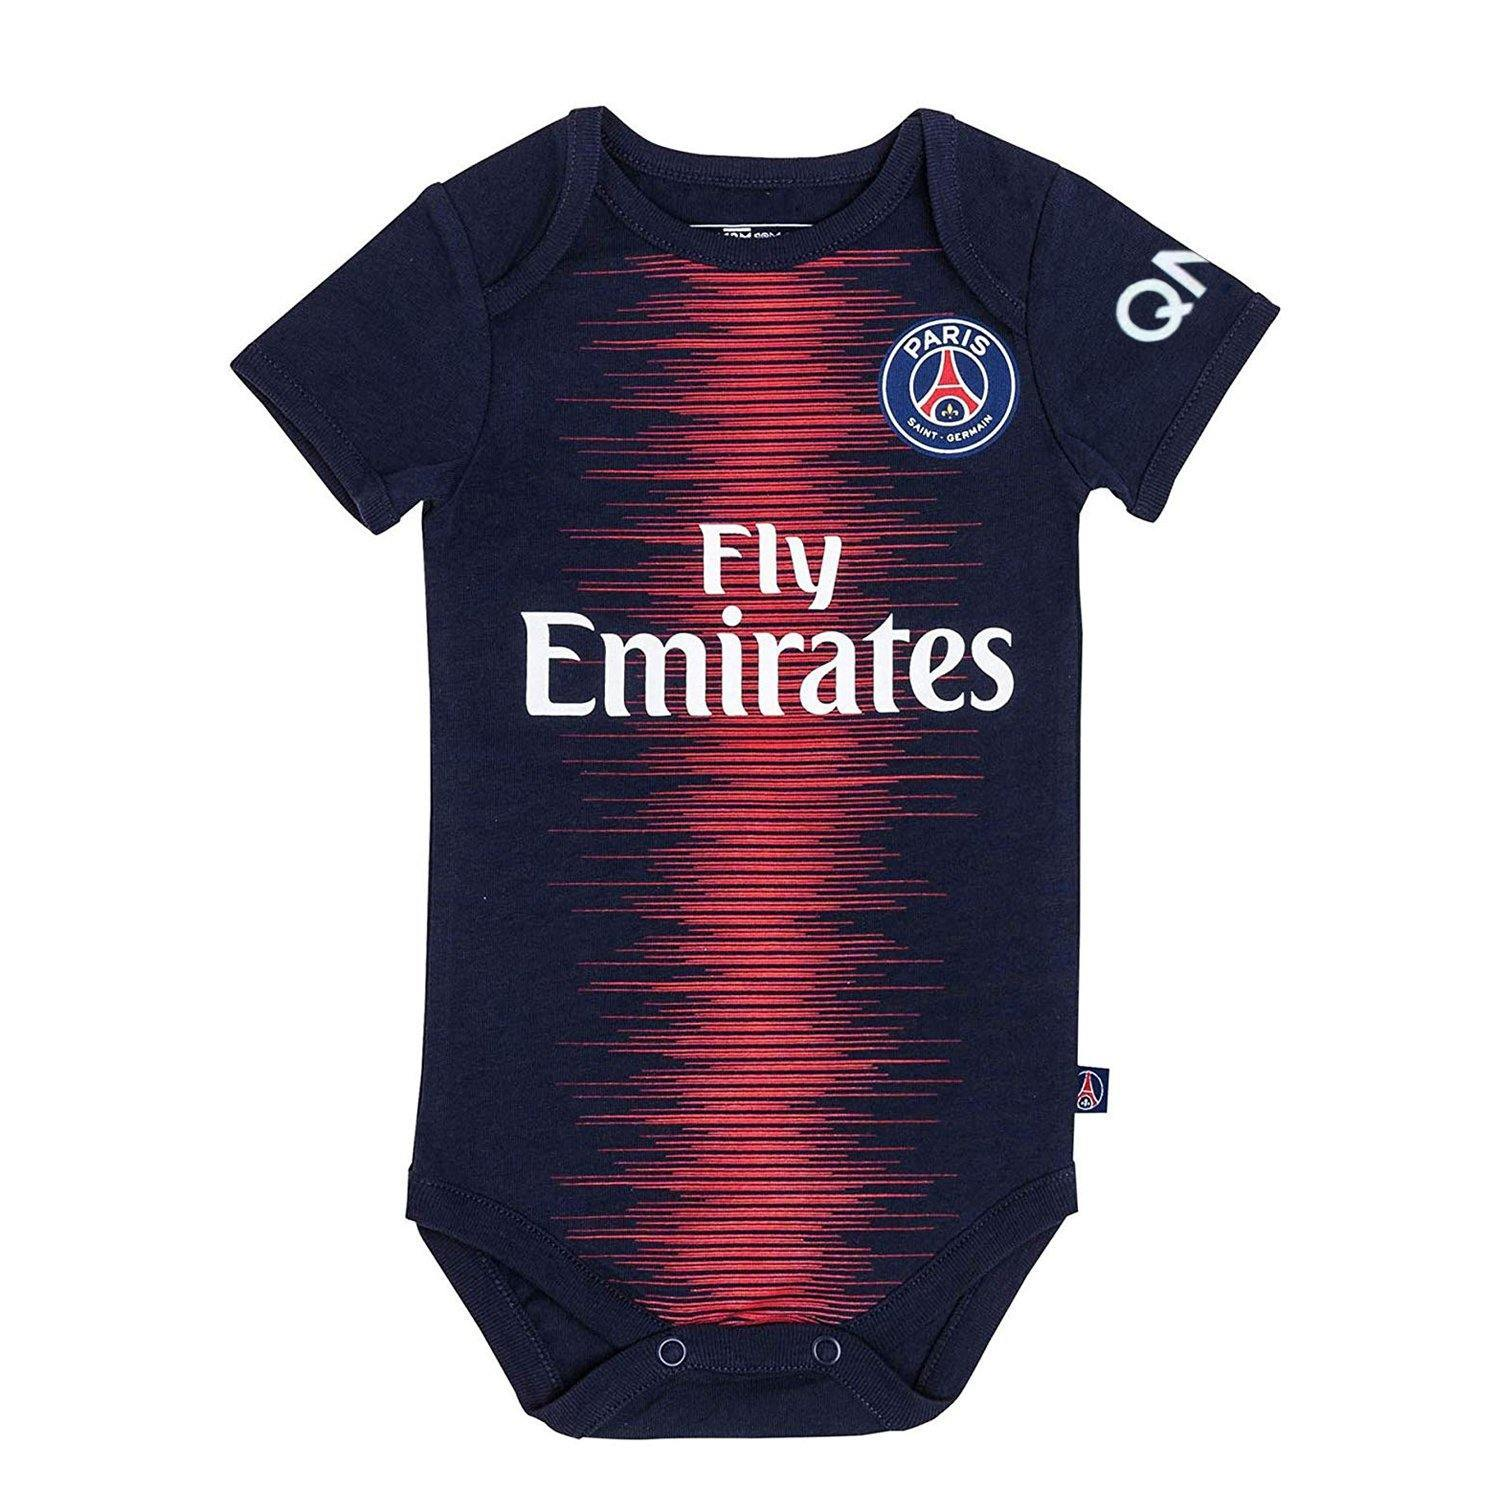 Body Bebe Paris PSG 2019 Foot freeshipping - Foot Online